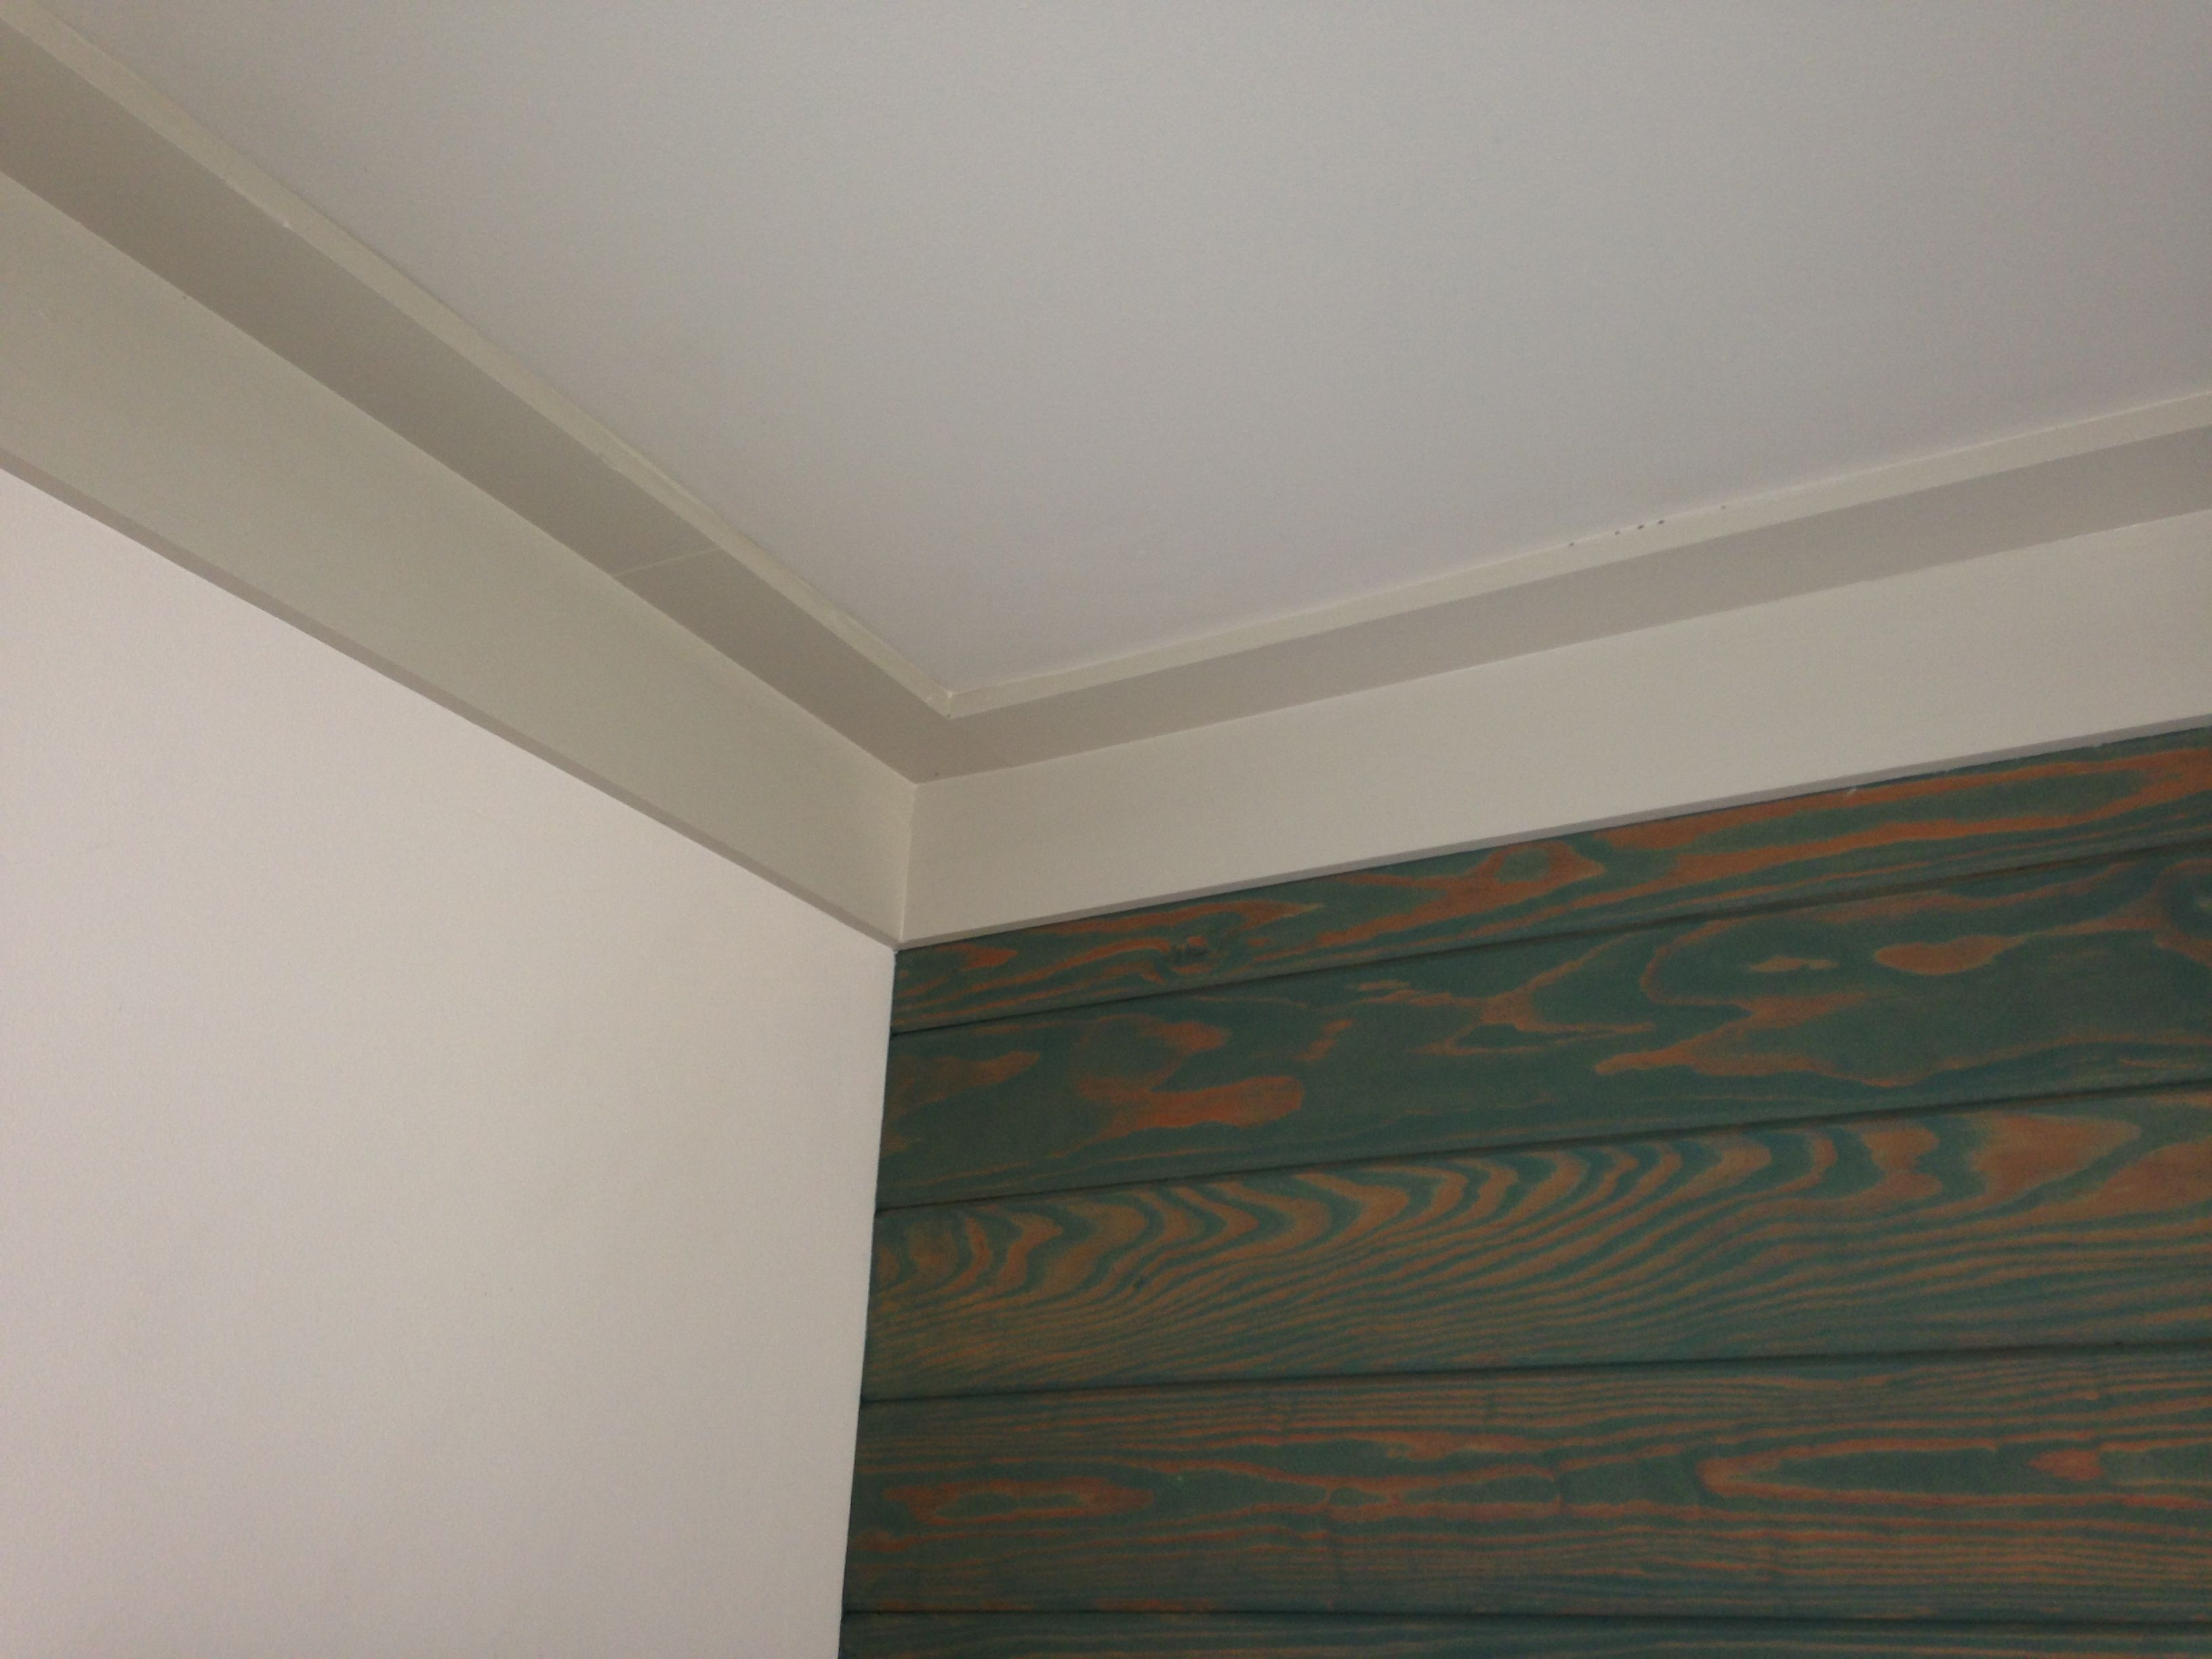 Painted 1x S The Ceiling Instead Of Crown Molding Moldings And Trim Ceiling Trim Crown Molding